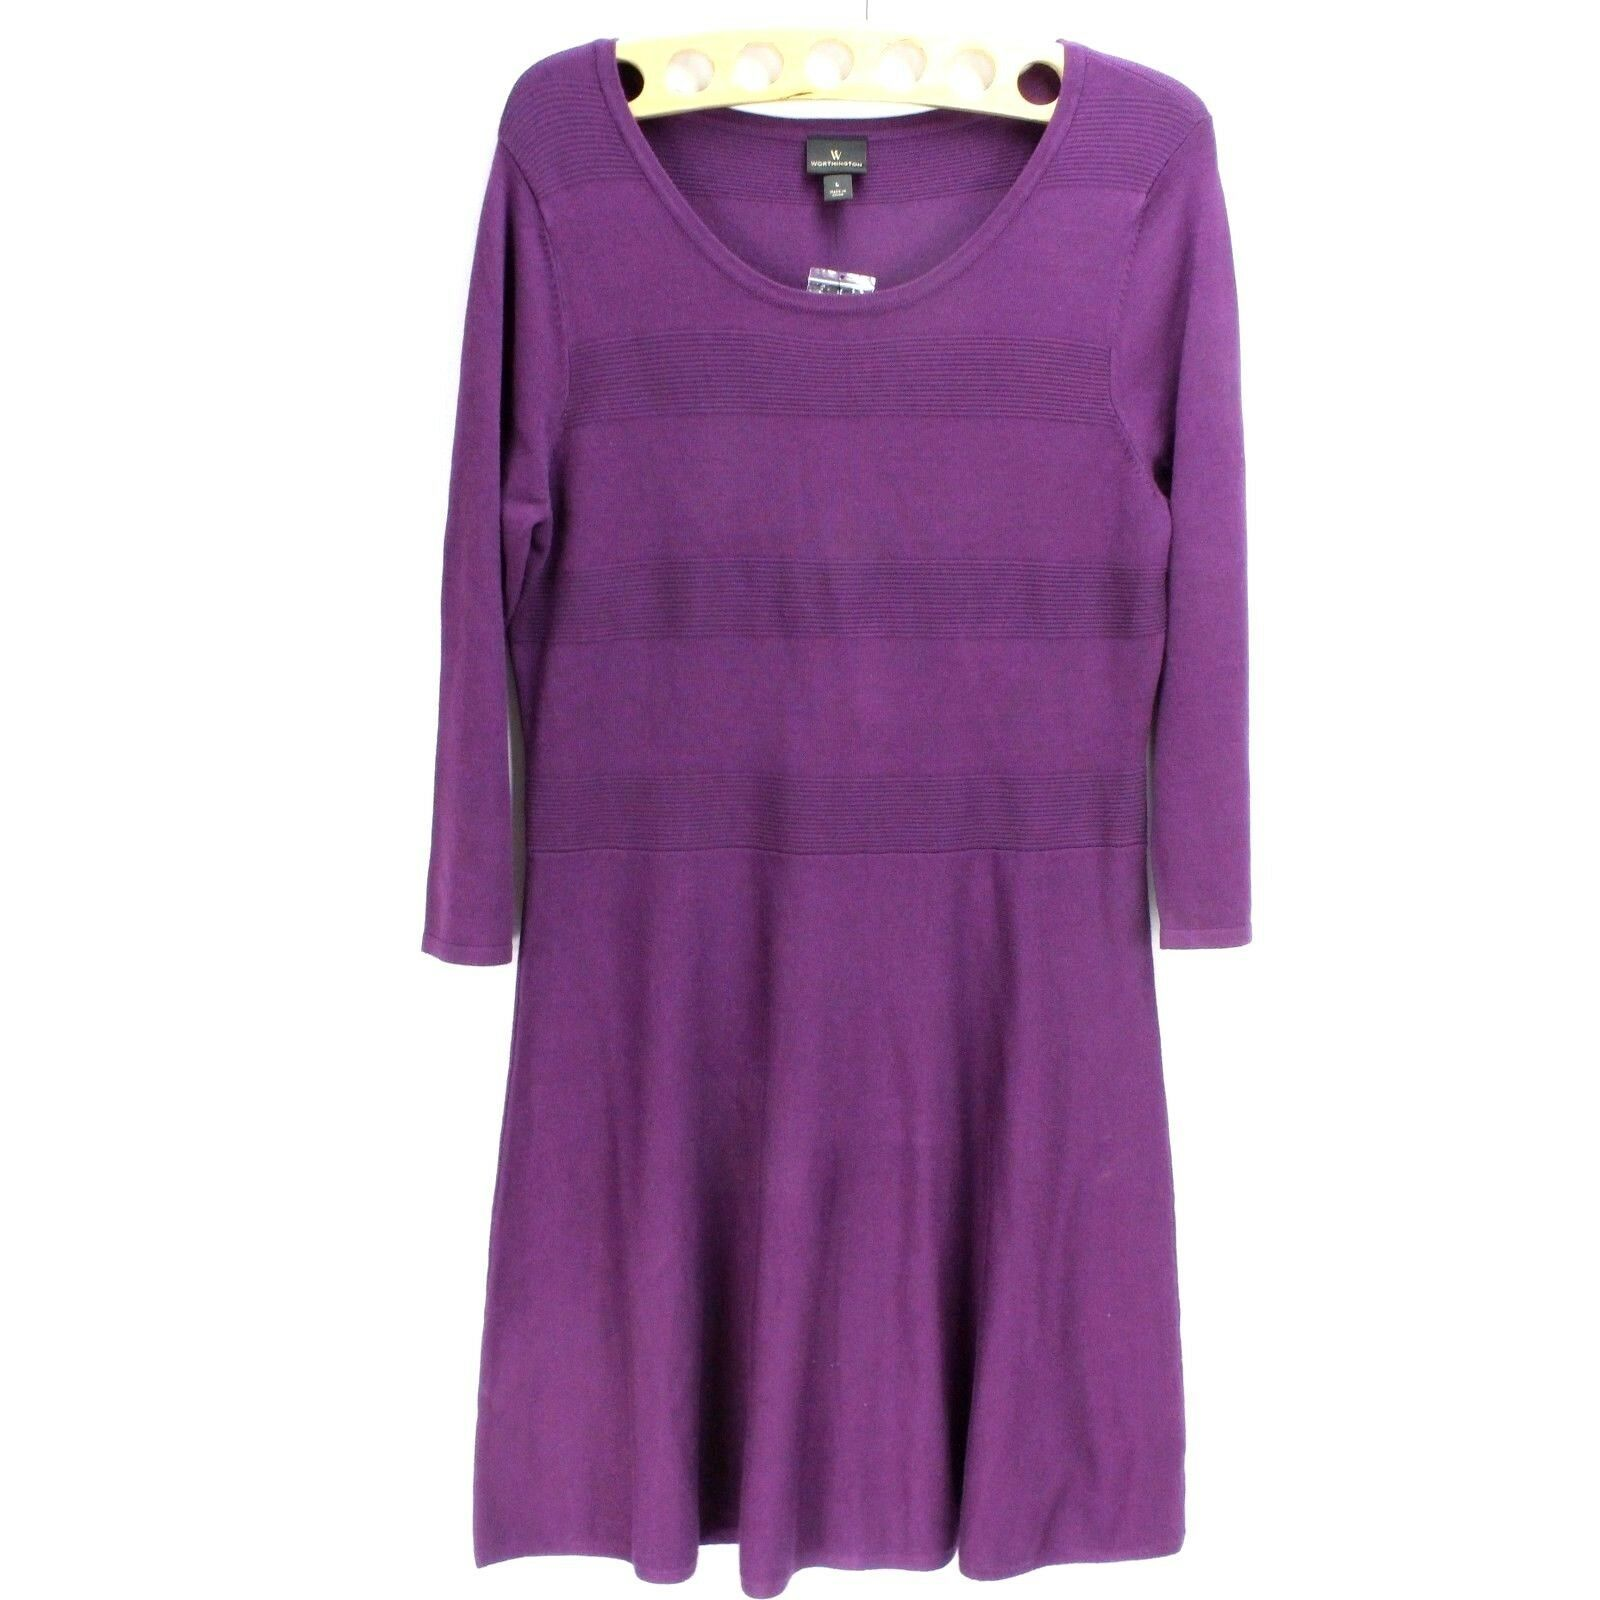 Primary image for NEW Worthington Shift Dress 3/4 sleeve Midi Women's Size Large Loose Fit $60.00